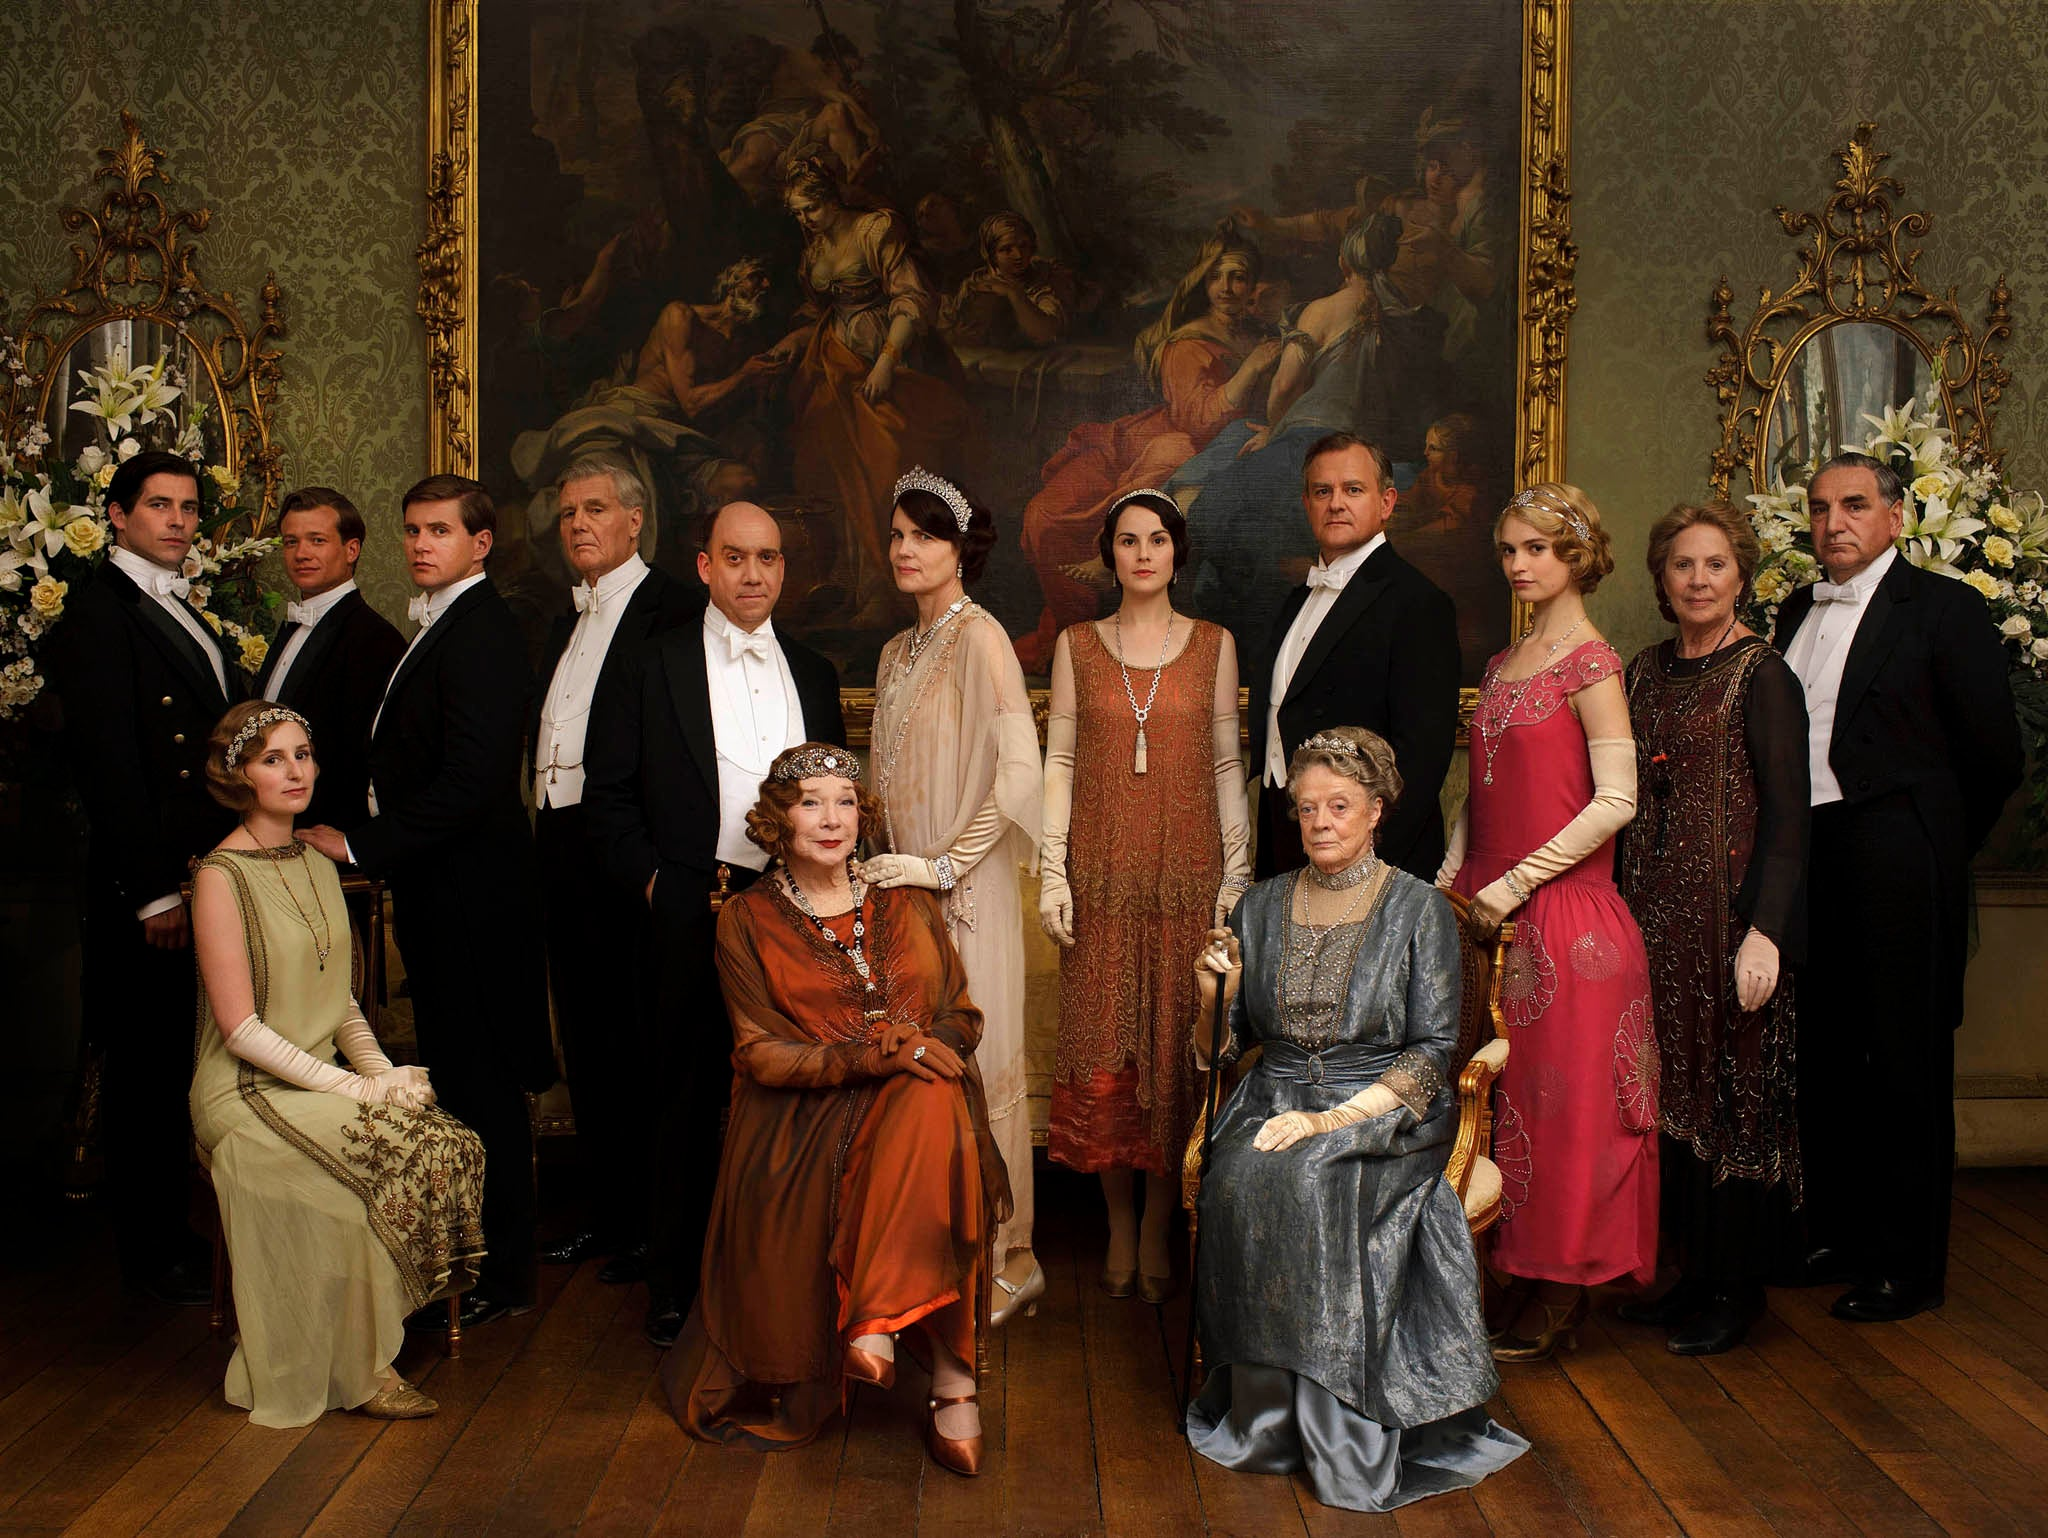 Like all hit TV shows, Downton Abbey is cursed to outstay its ...